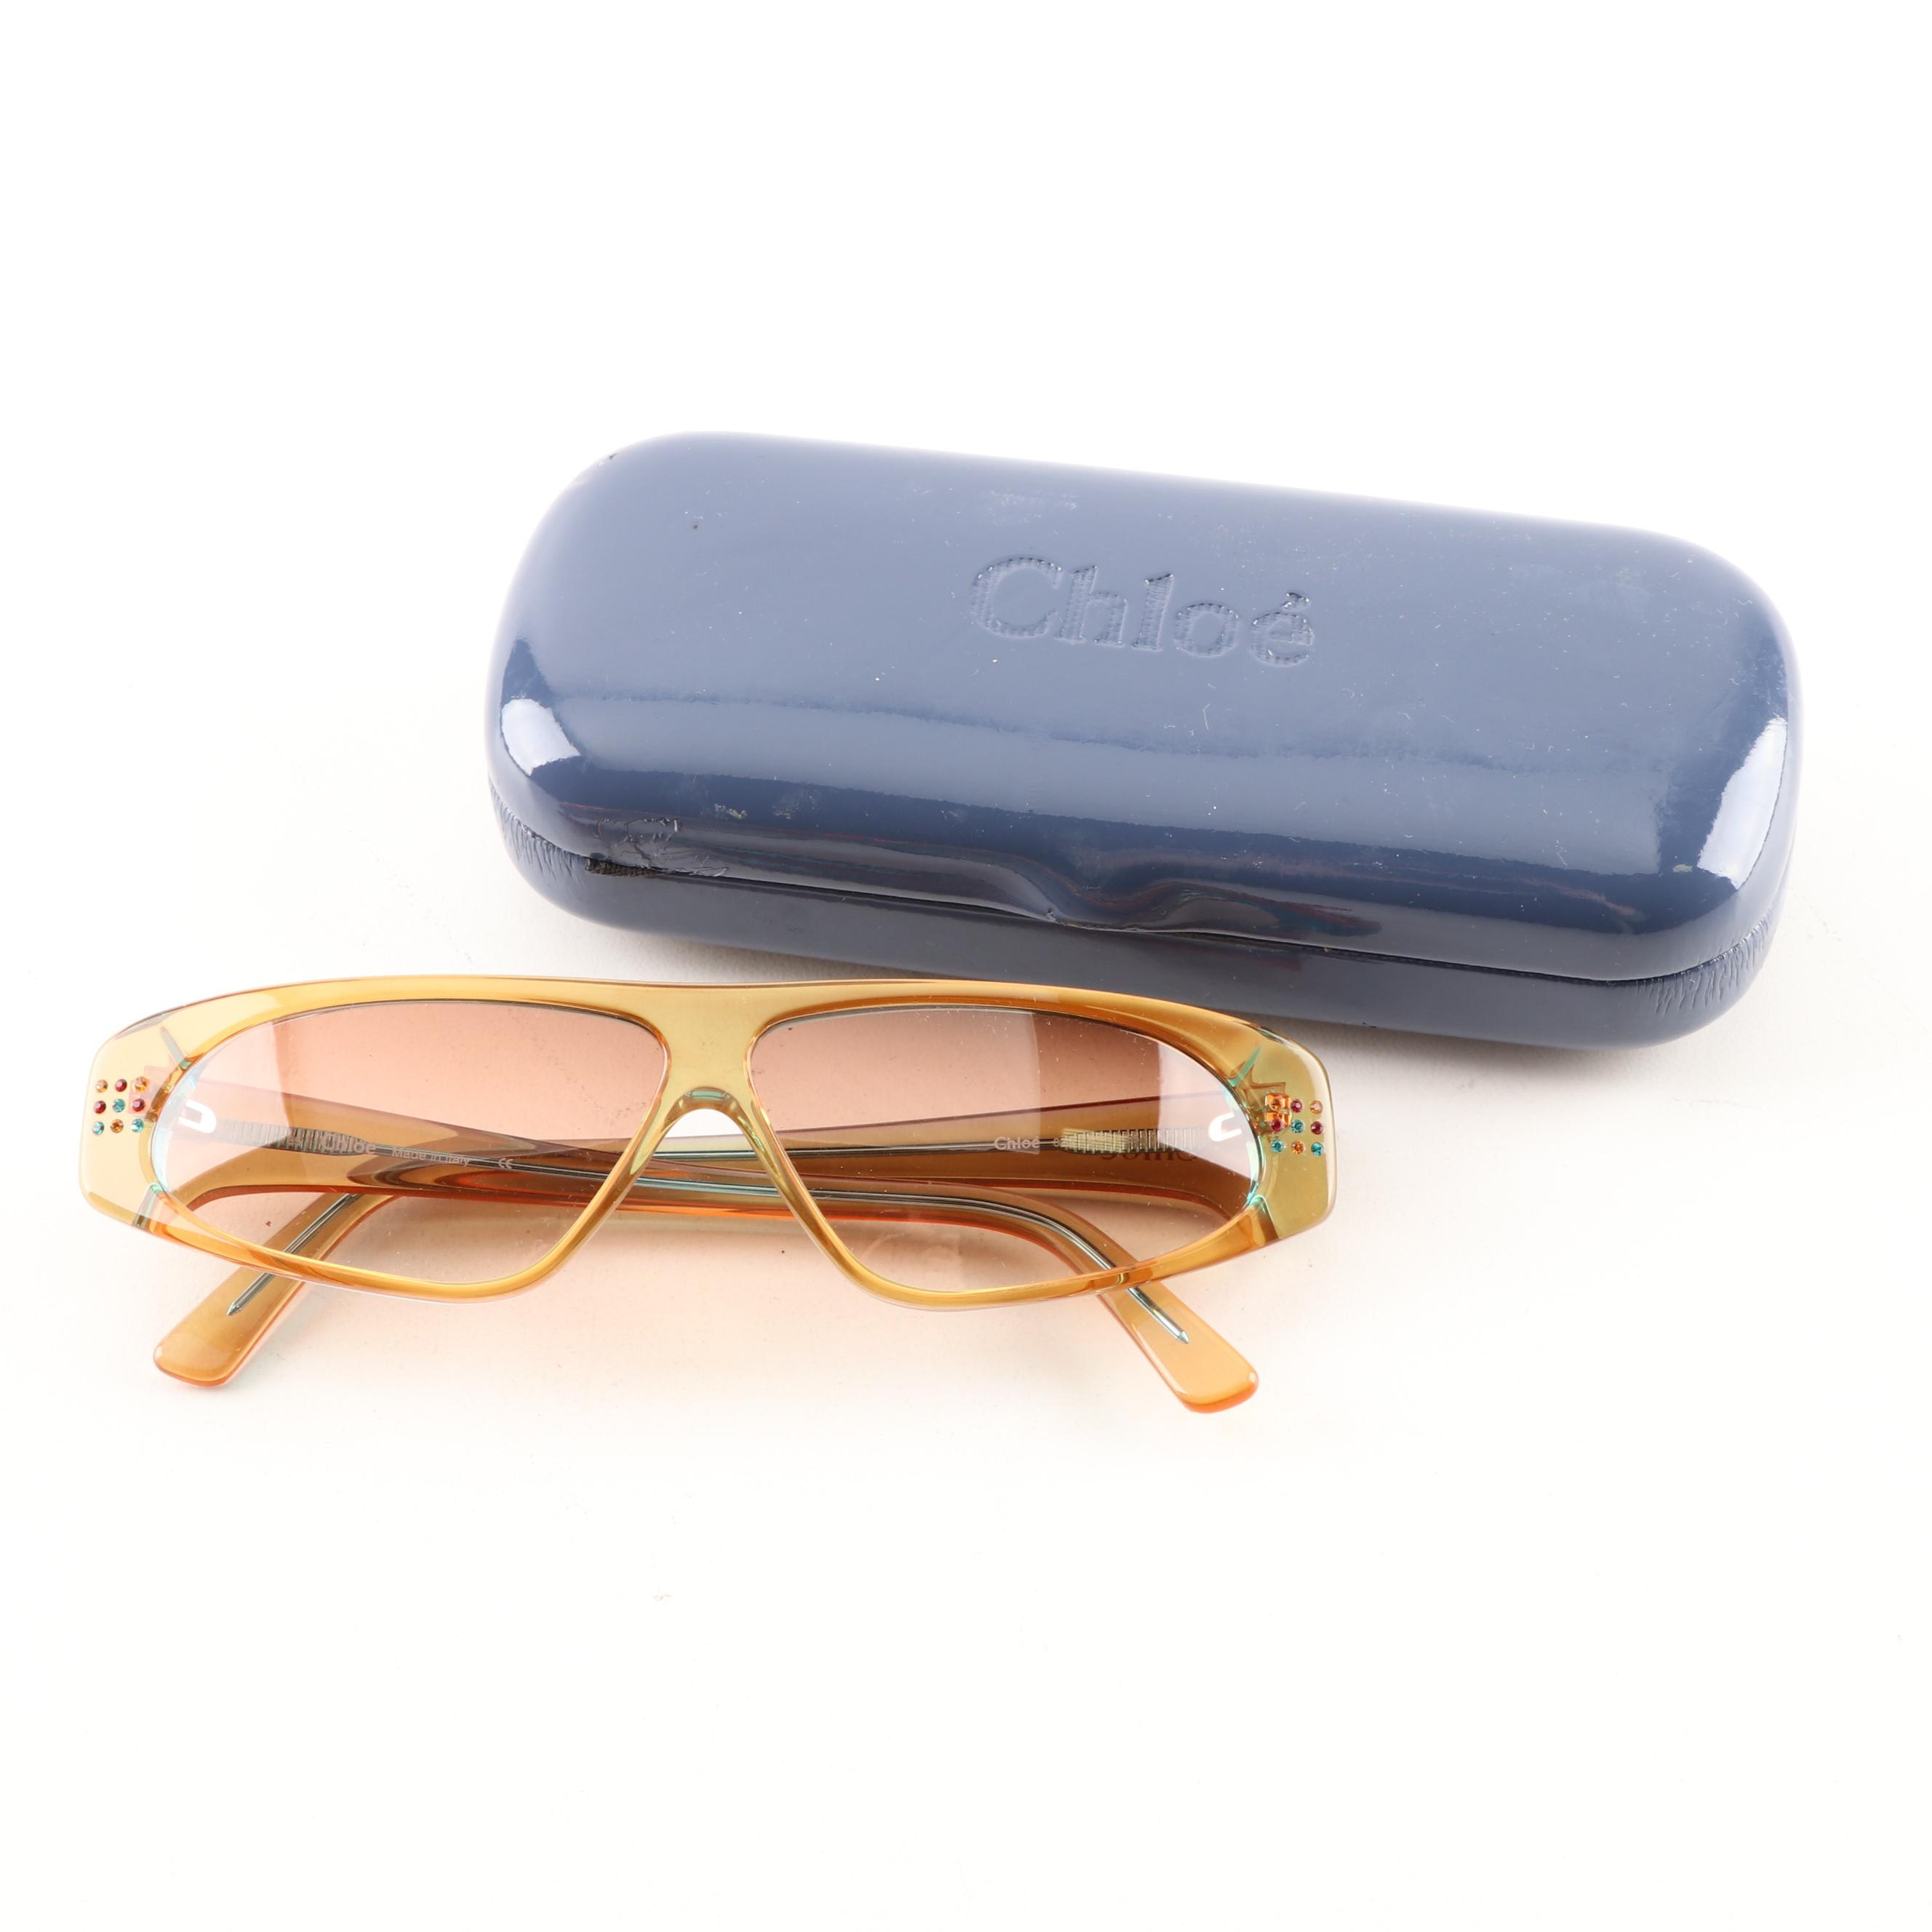 Chloé Sunglasses and Case